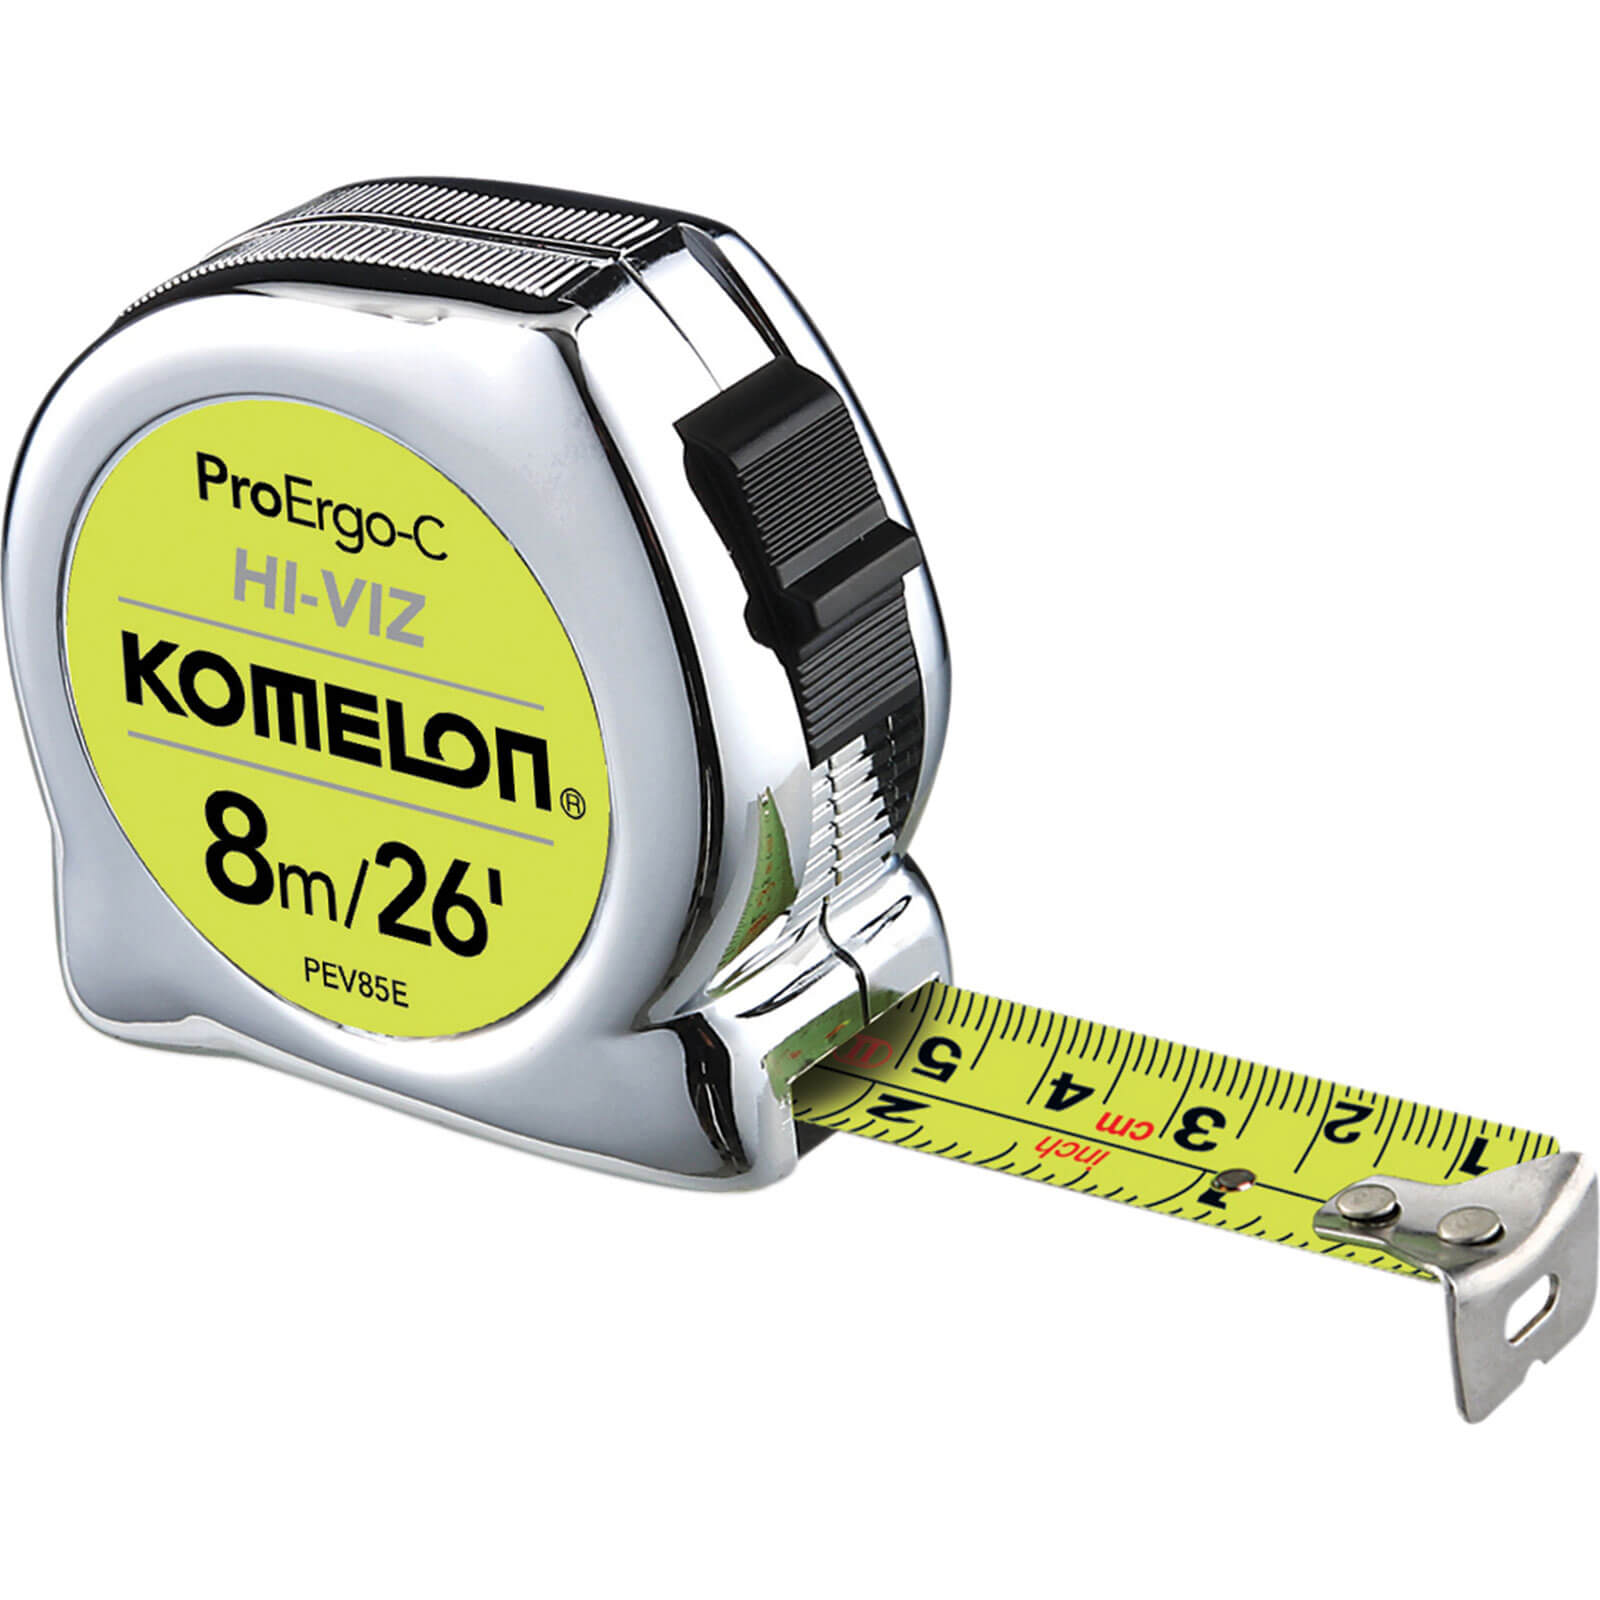 Image of Komelon The Professional Tape Imperial & Metric 26ft / 8m 25mm